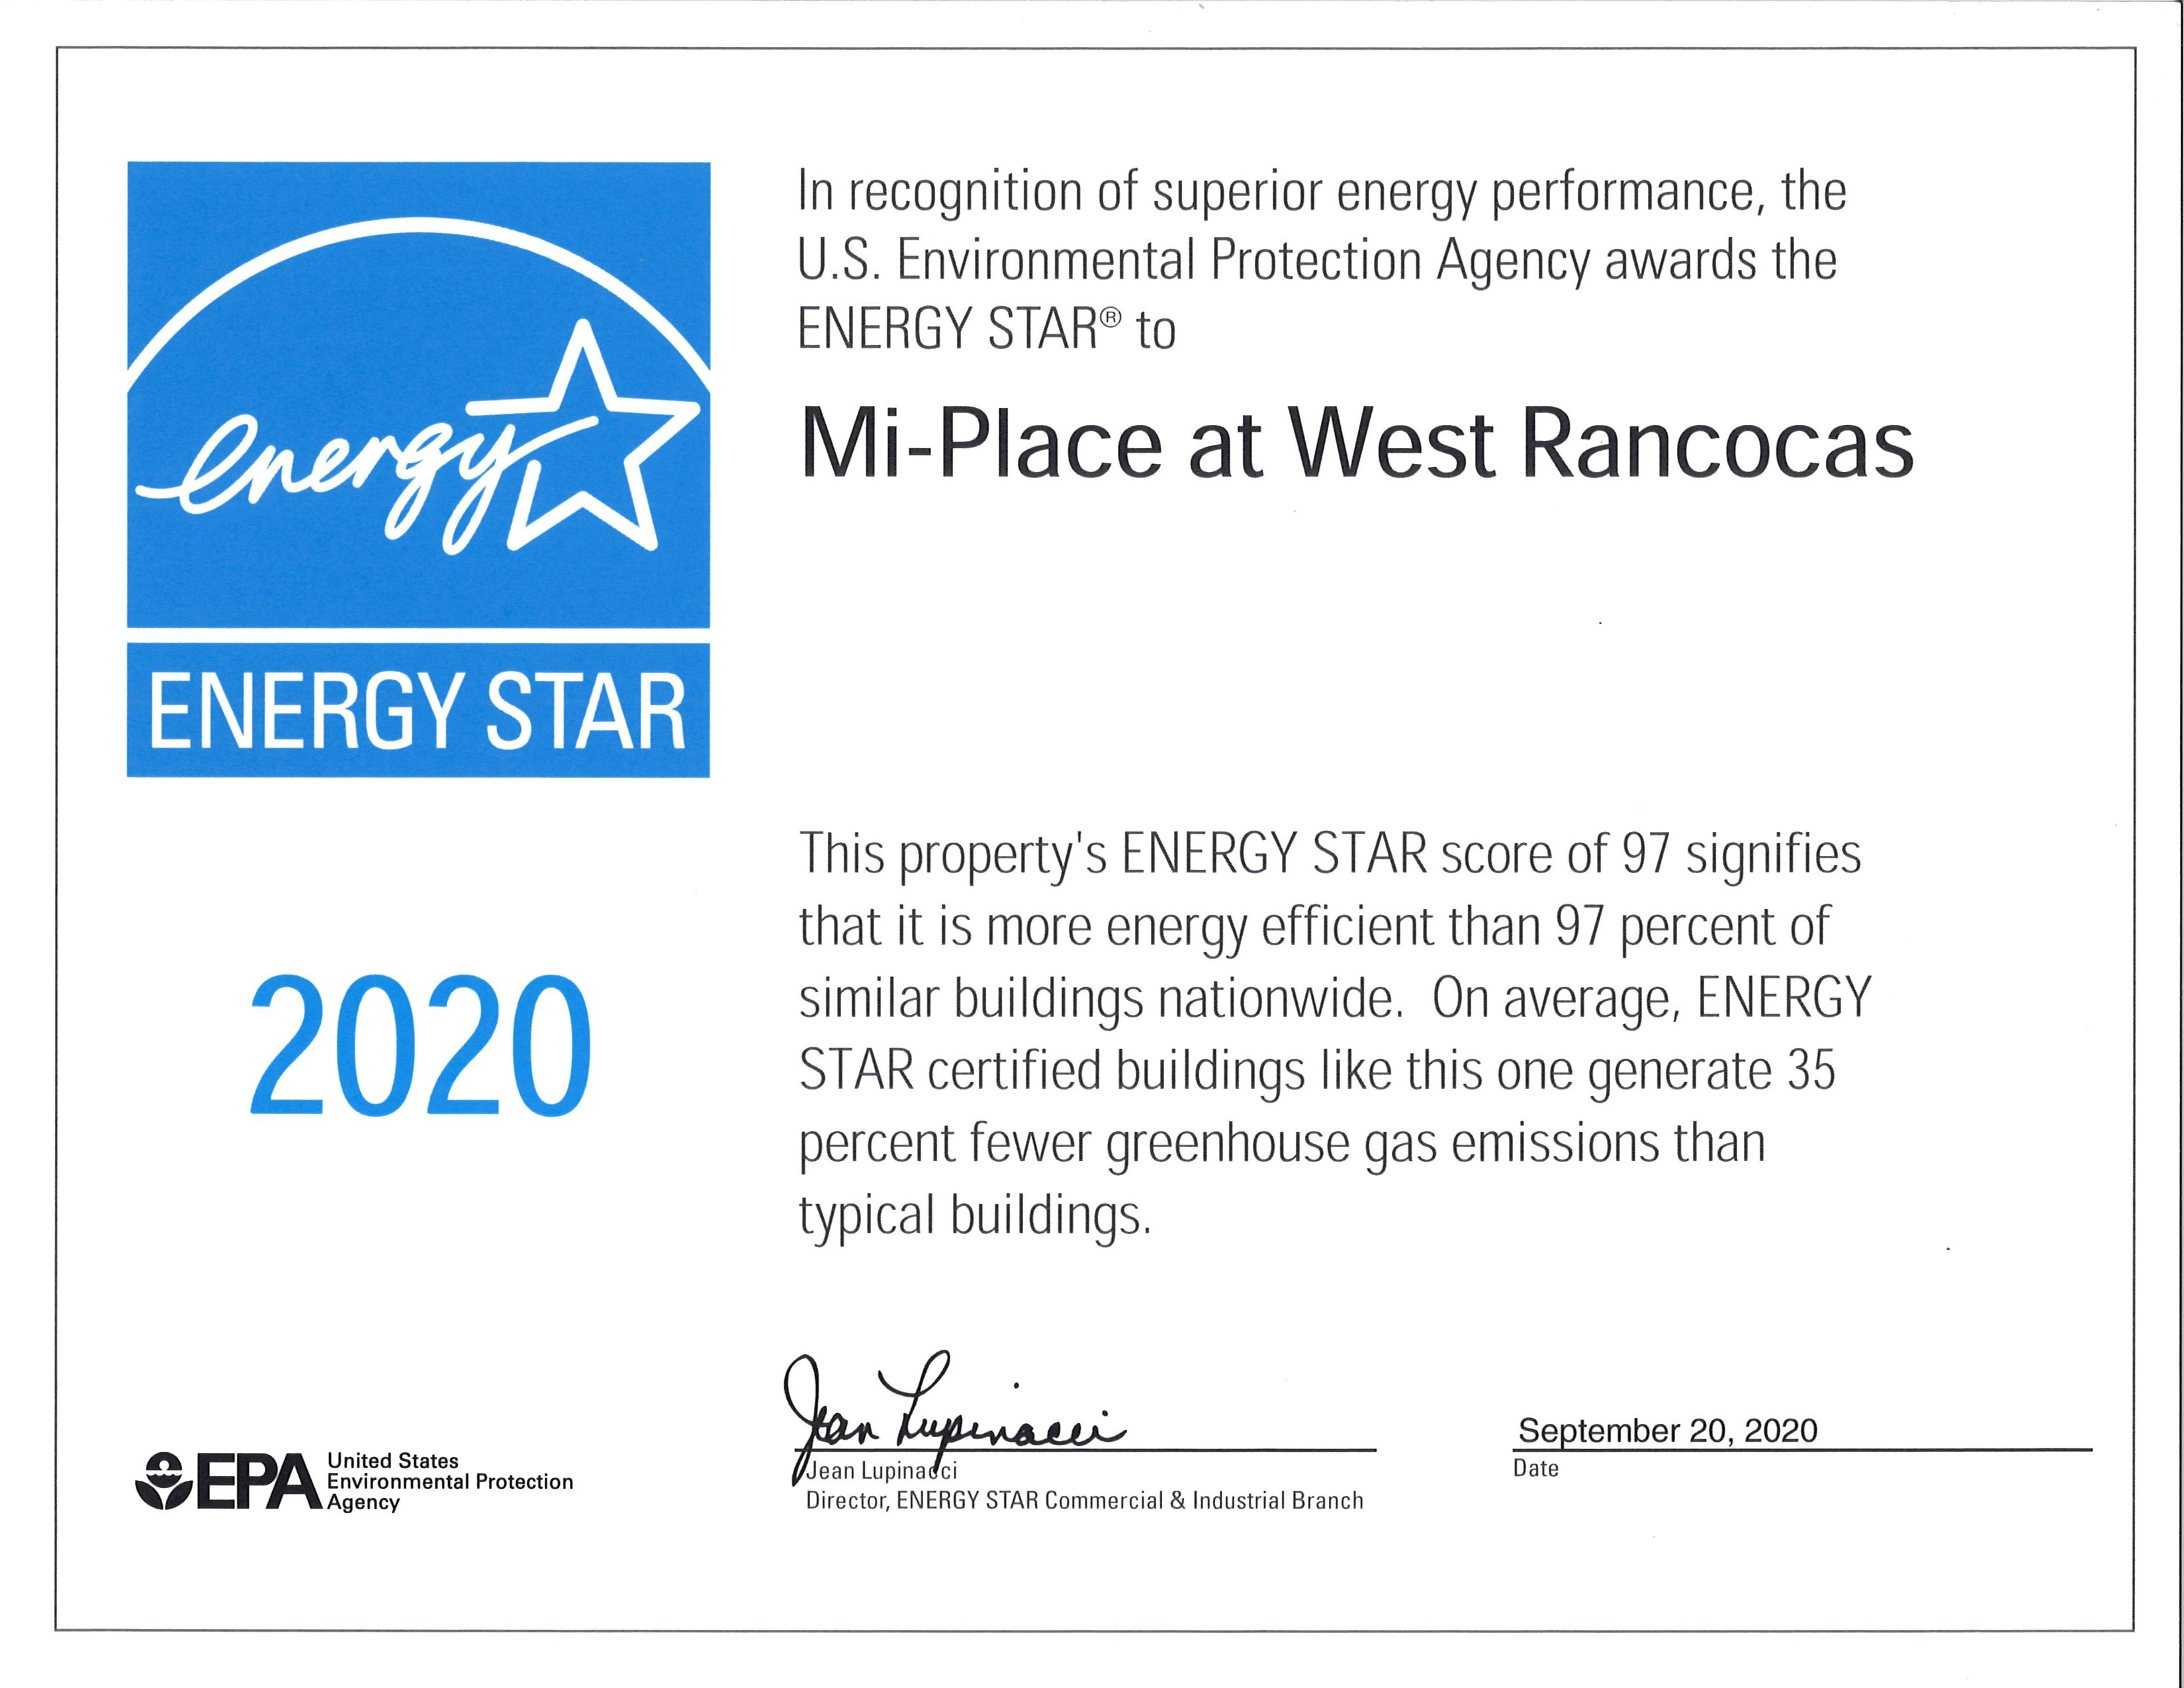 Mi-Place at West Rancocas Receives Energy Star Certificate!